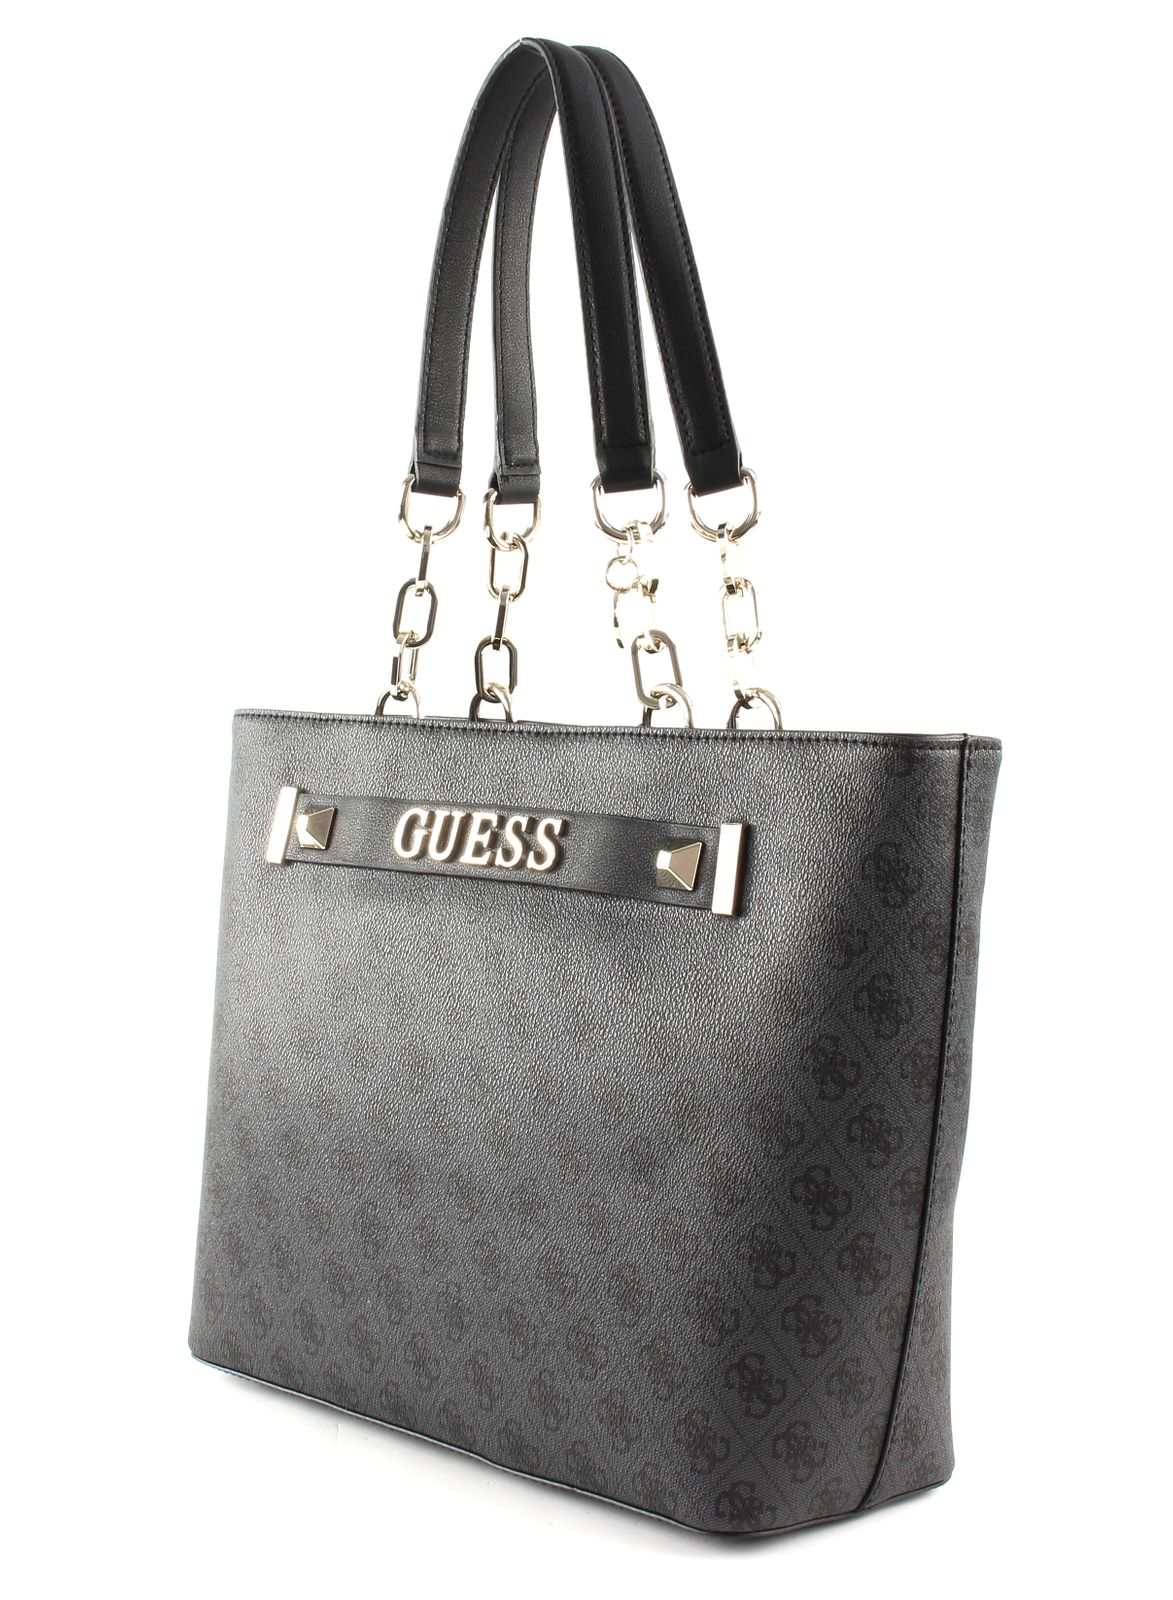 GUESS Bags & Handbags for Women for sale | eBay